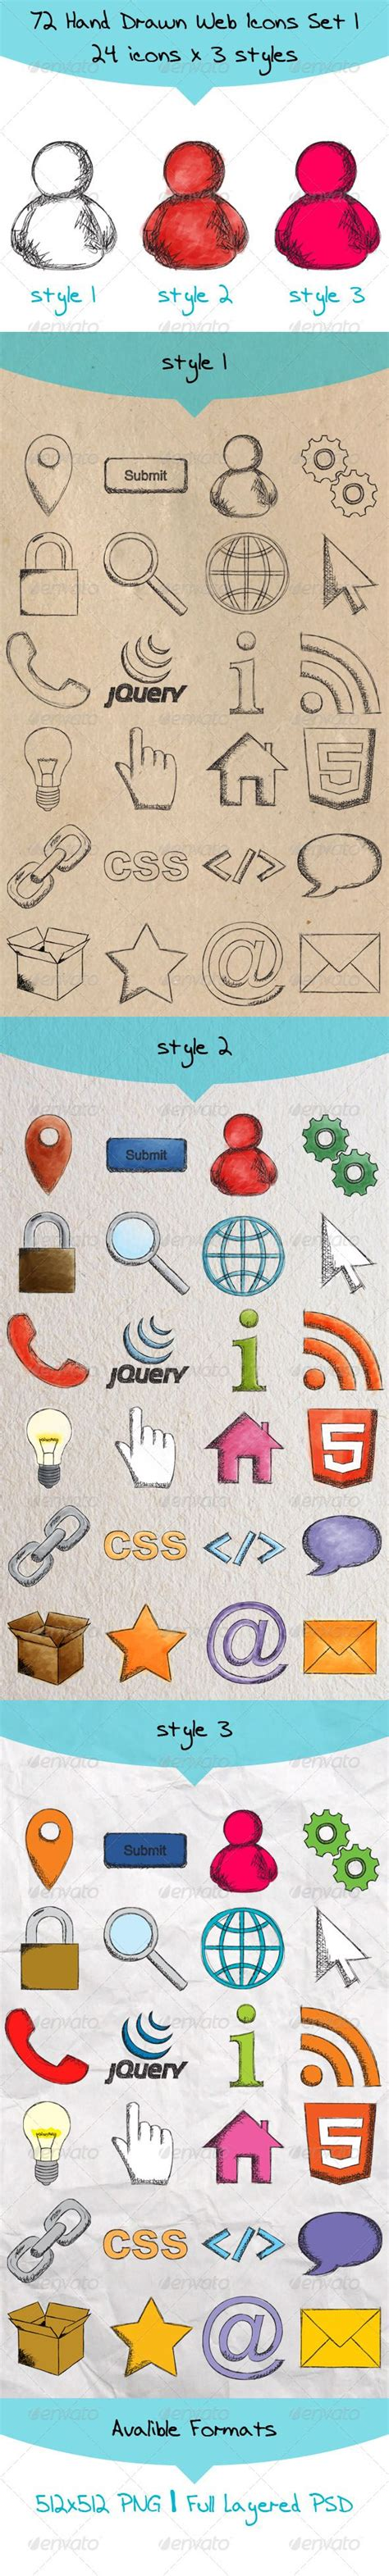 designspiration search jquery 17 best images about icons manifesto mood board on